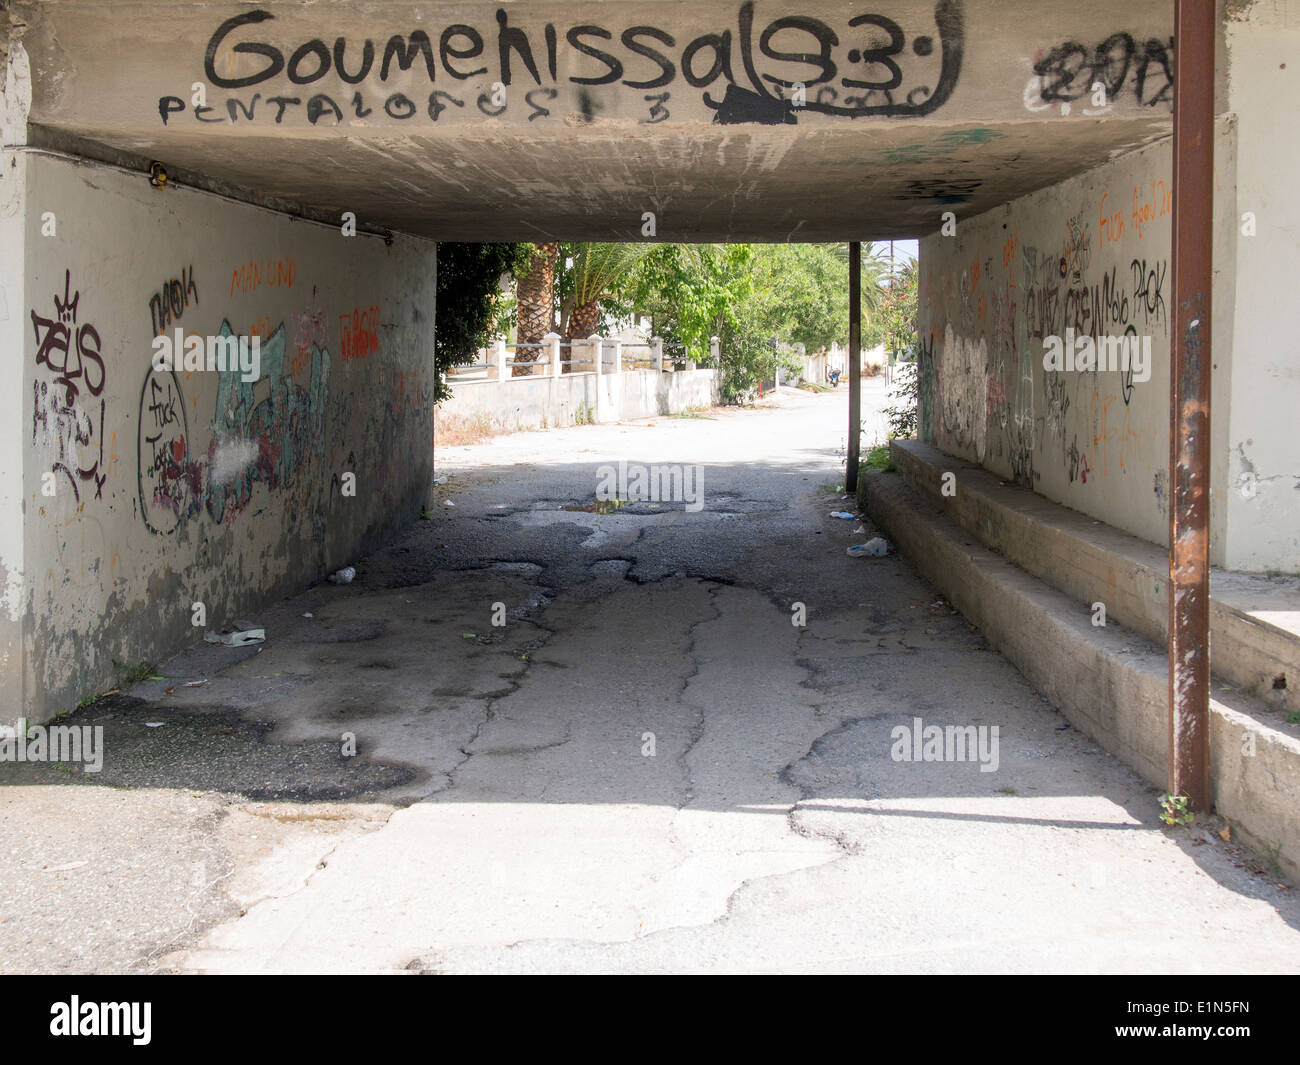 Dangerous looking underpass with rubbish and graffiti - Stock Image